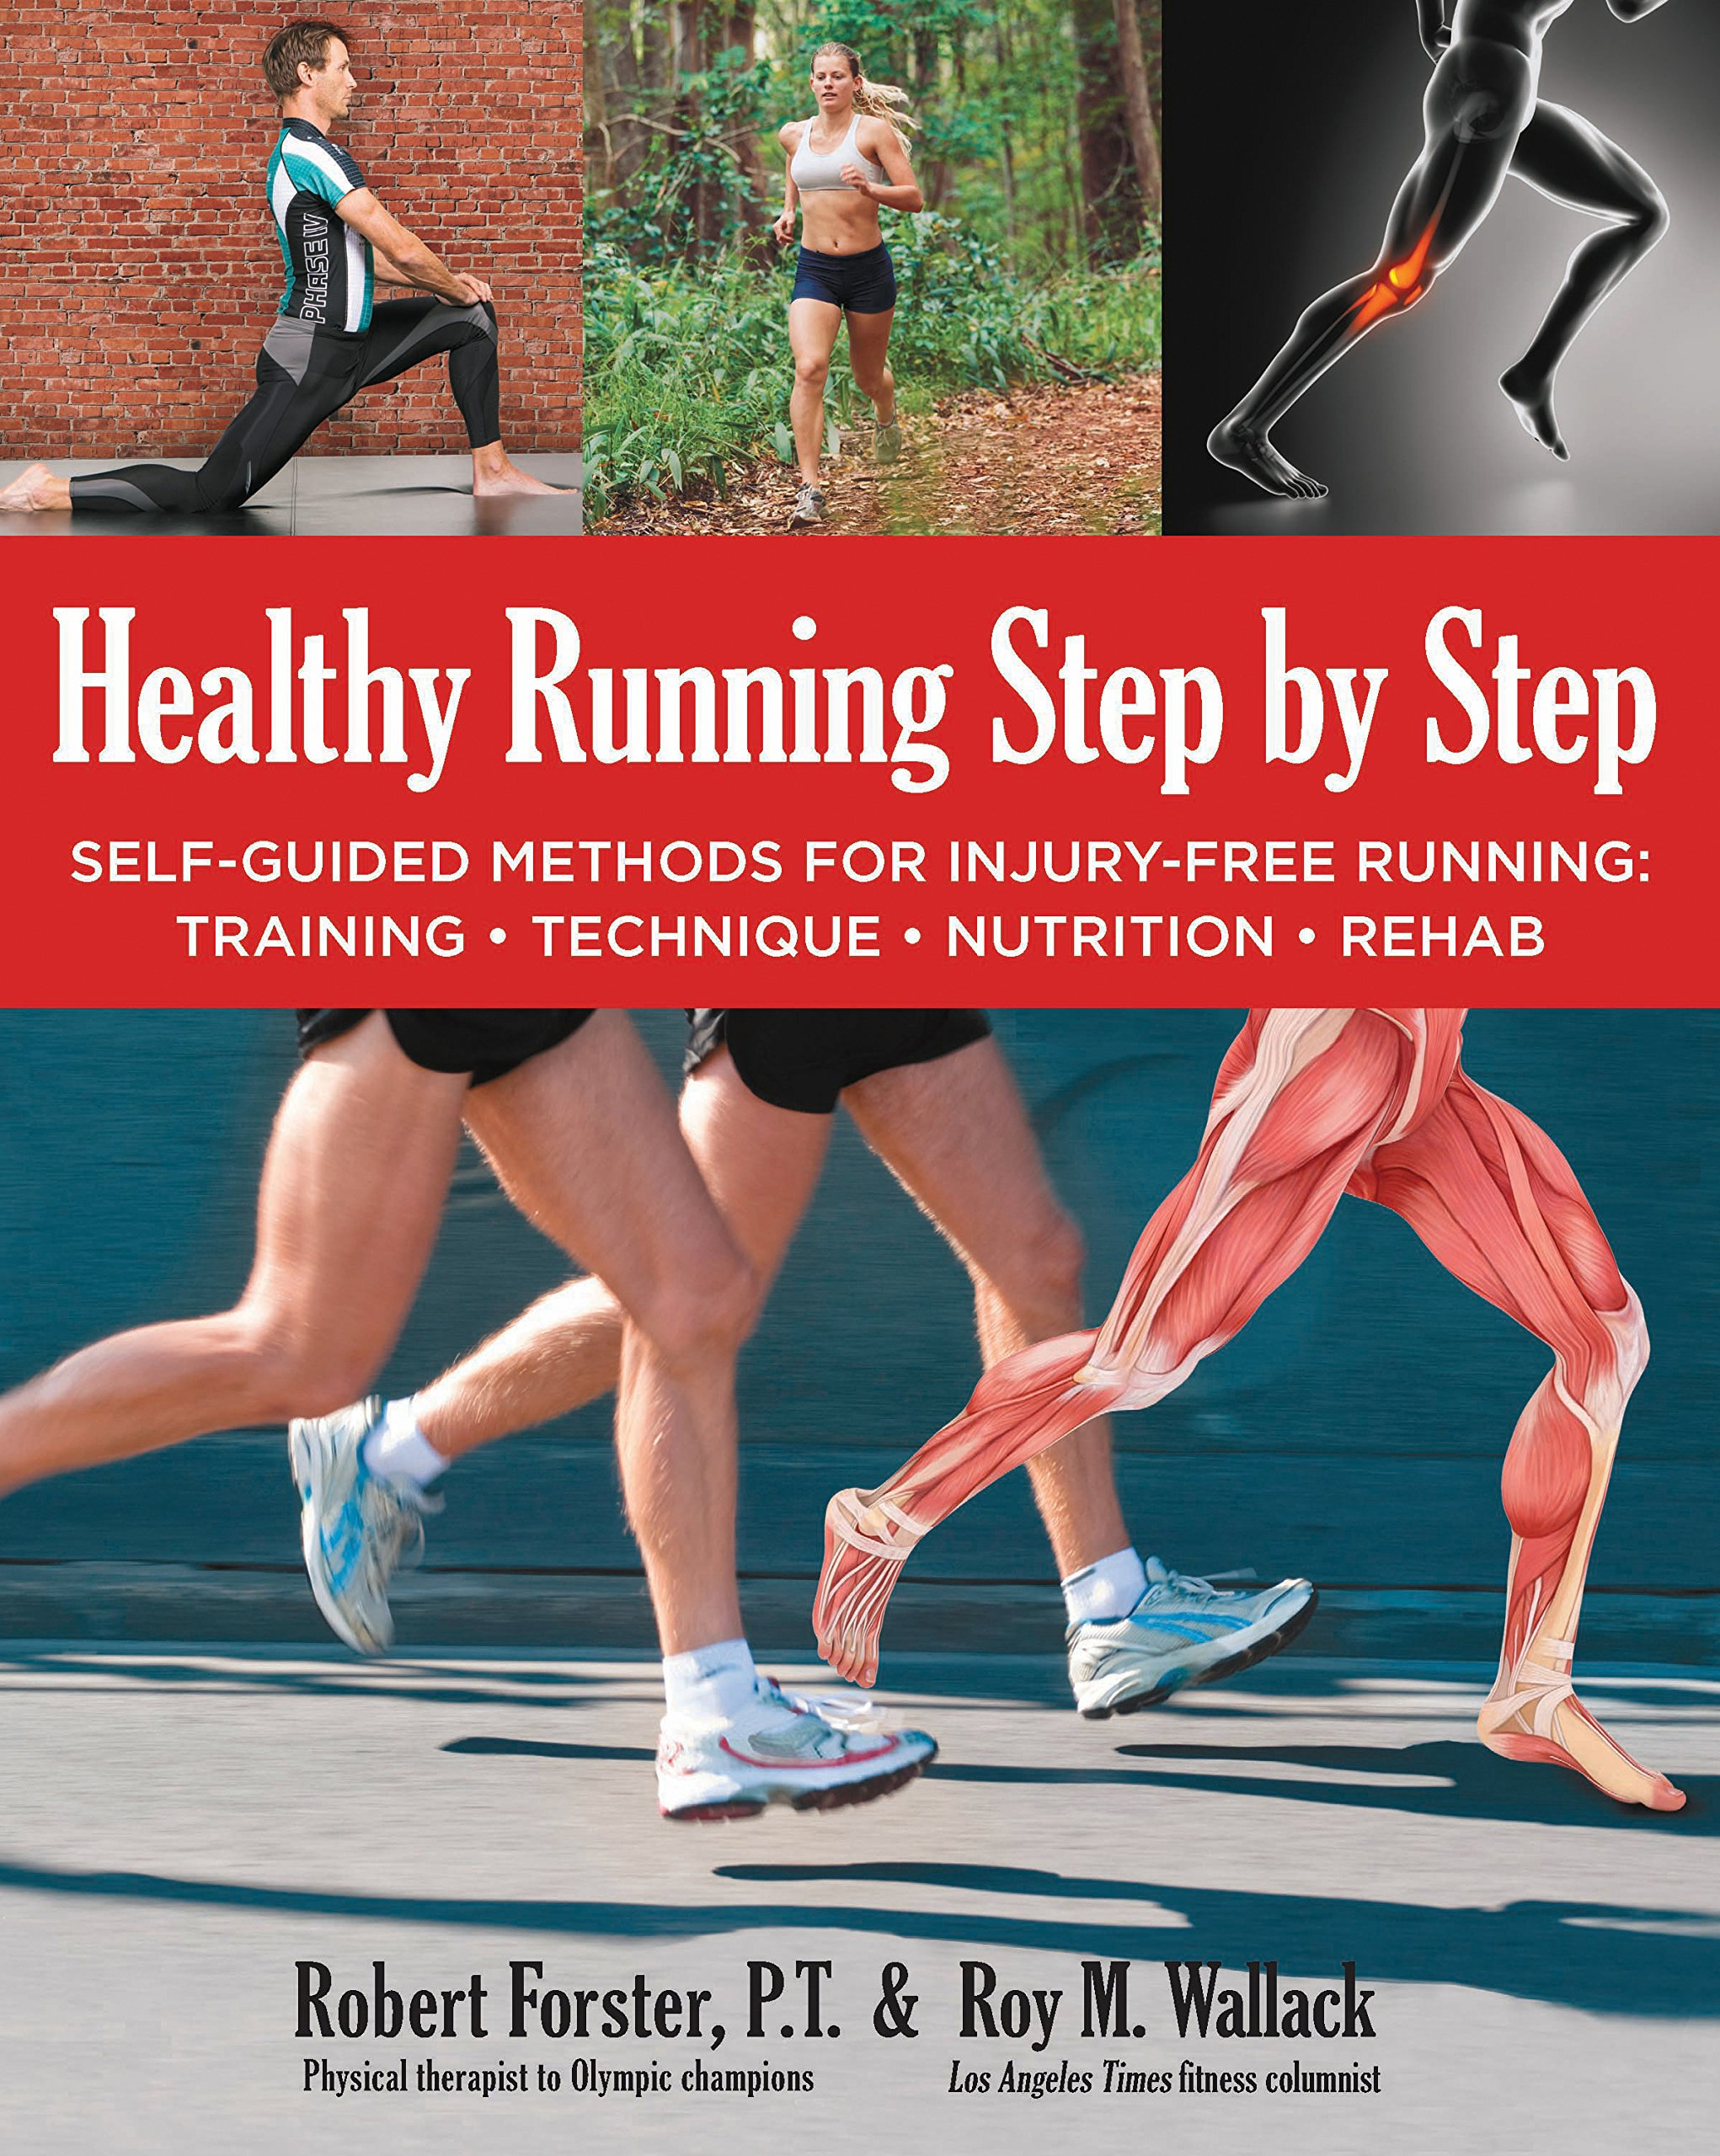 Healthy Running Step Self Guided Injury Free product image